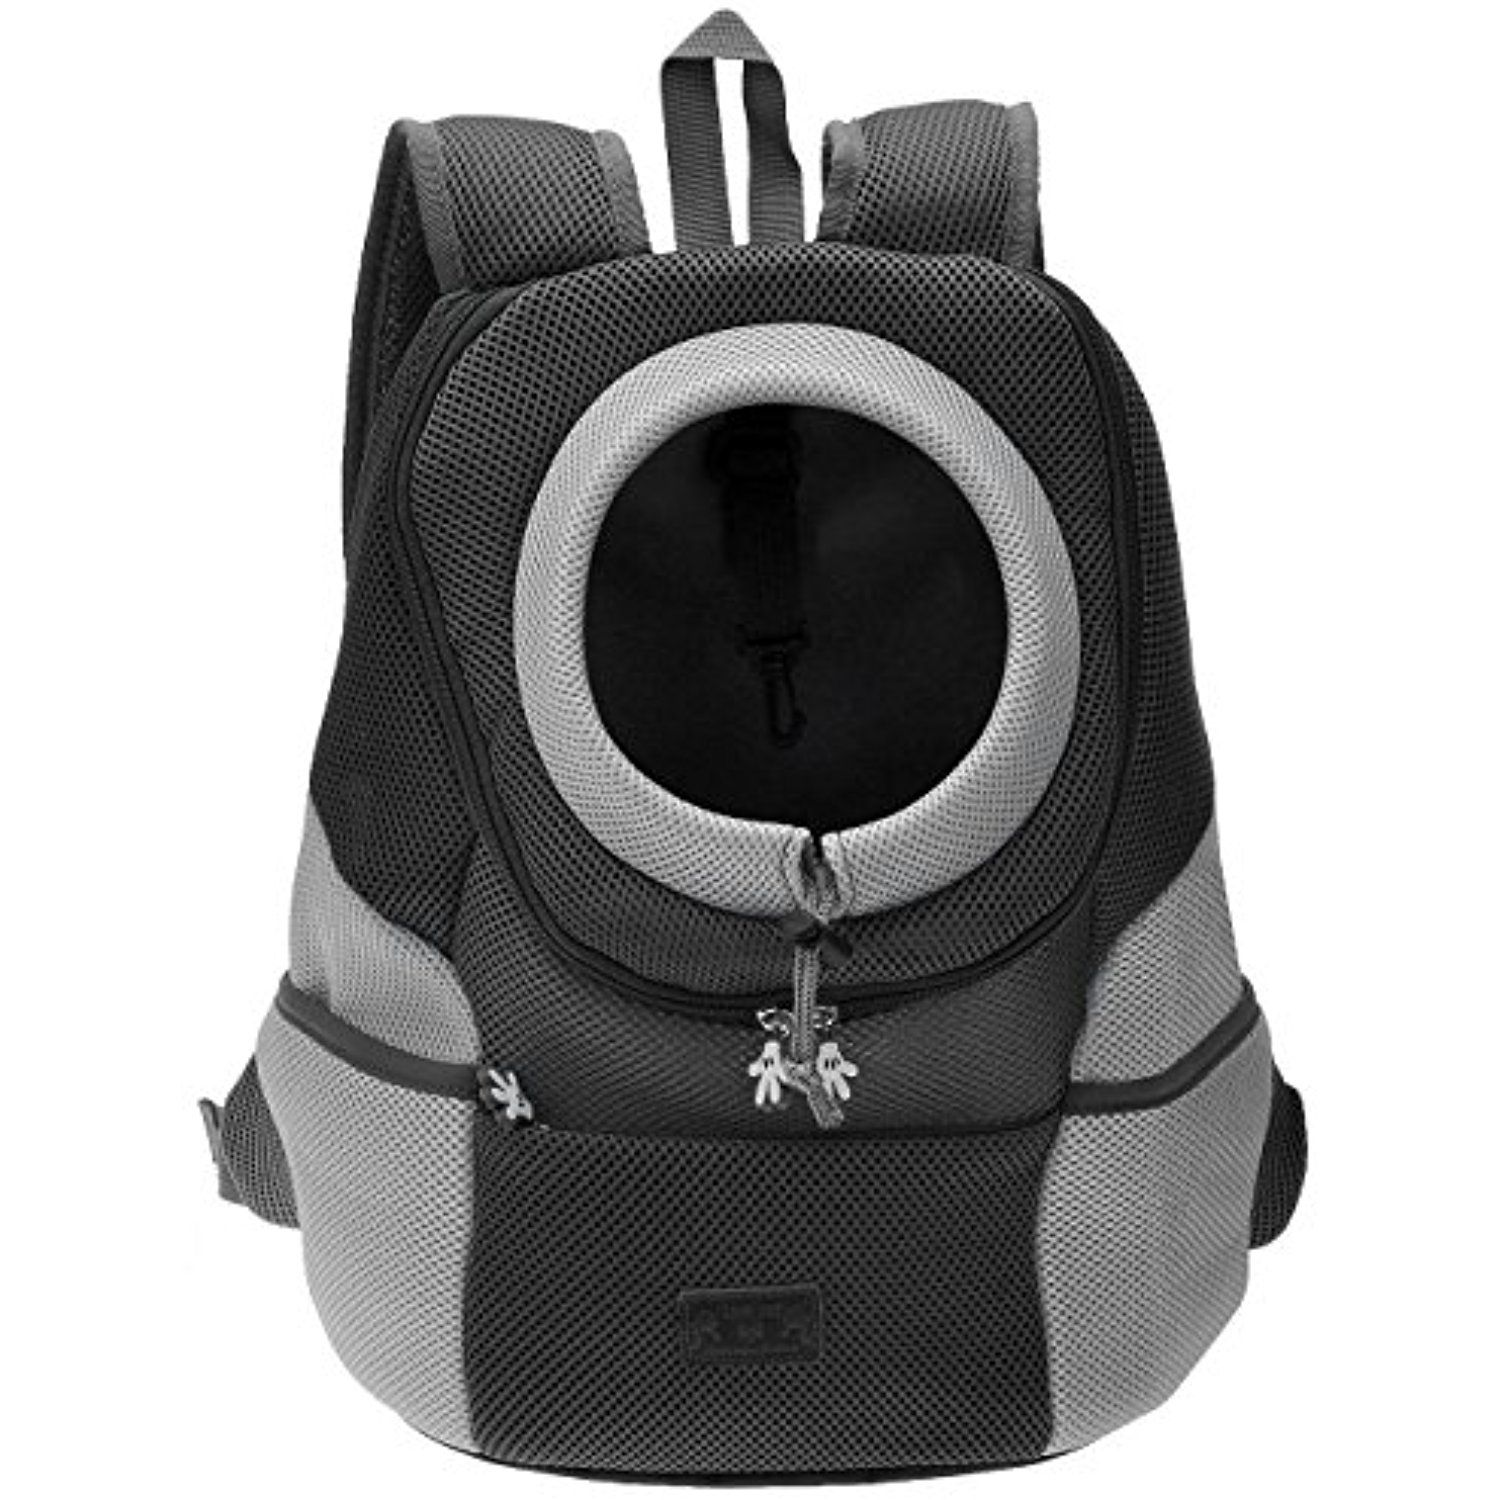 197becc311 Mangostyle Pet Dog Cat Puppy Portable Airline Travel Approved Carrier  Backpack bag with Breathable Mesh Adjustable Front Bag Head Out Design Double  Shoulder ...